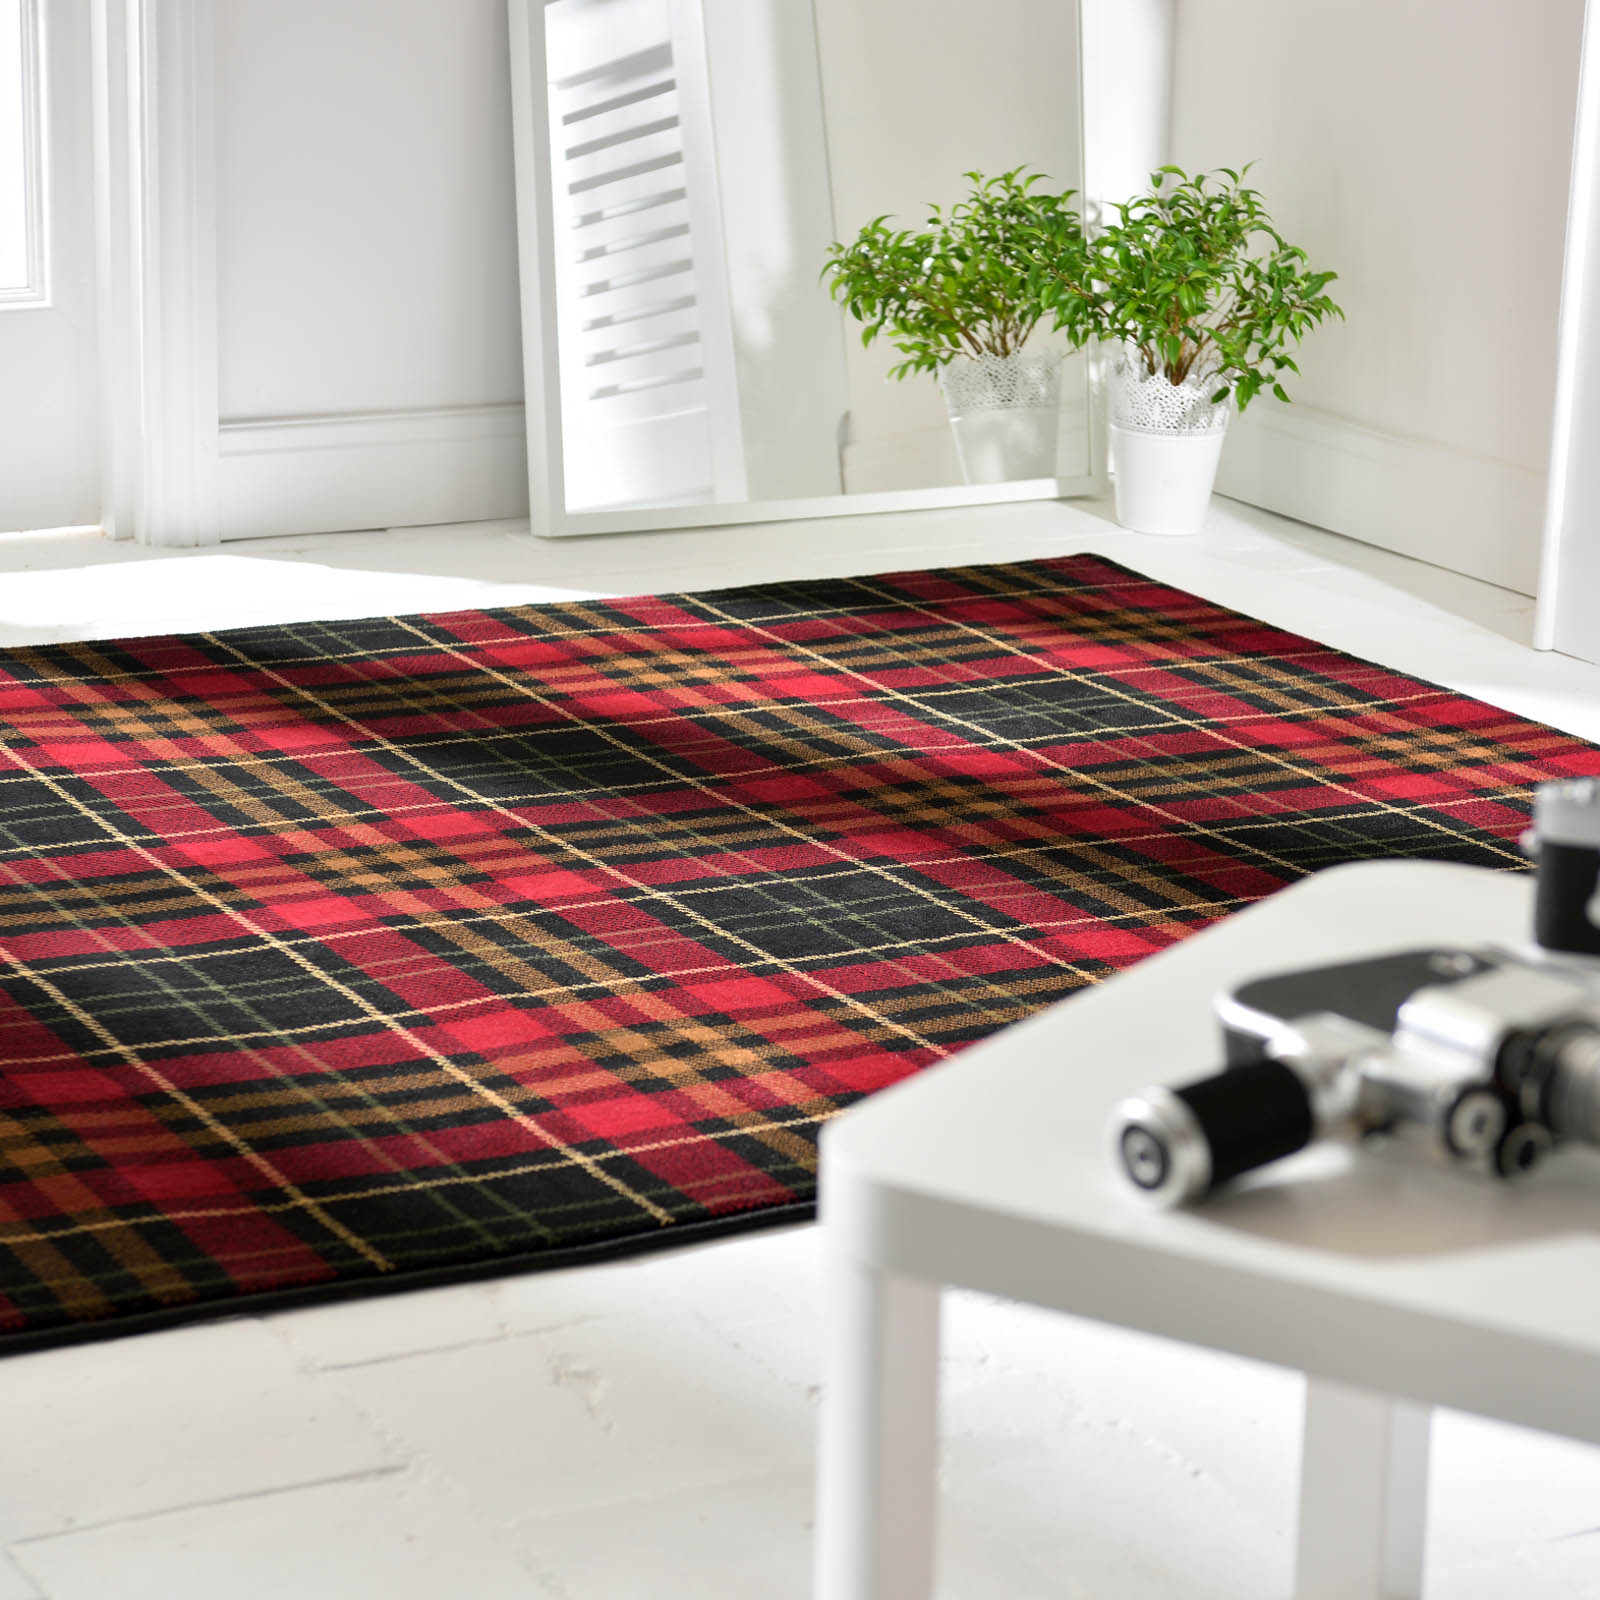 Glen Kilry Rugs in Red and Black